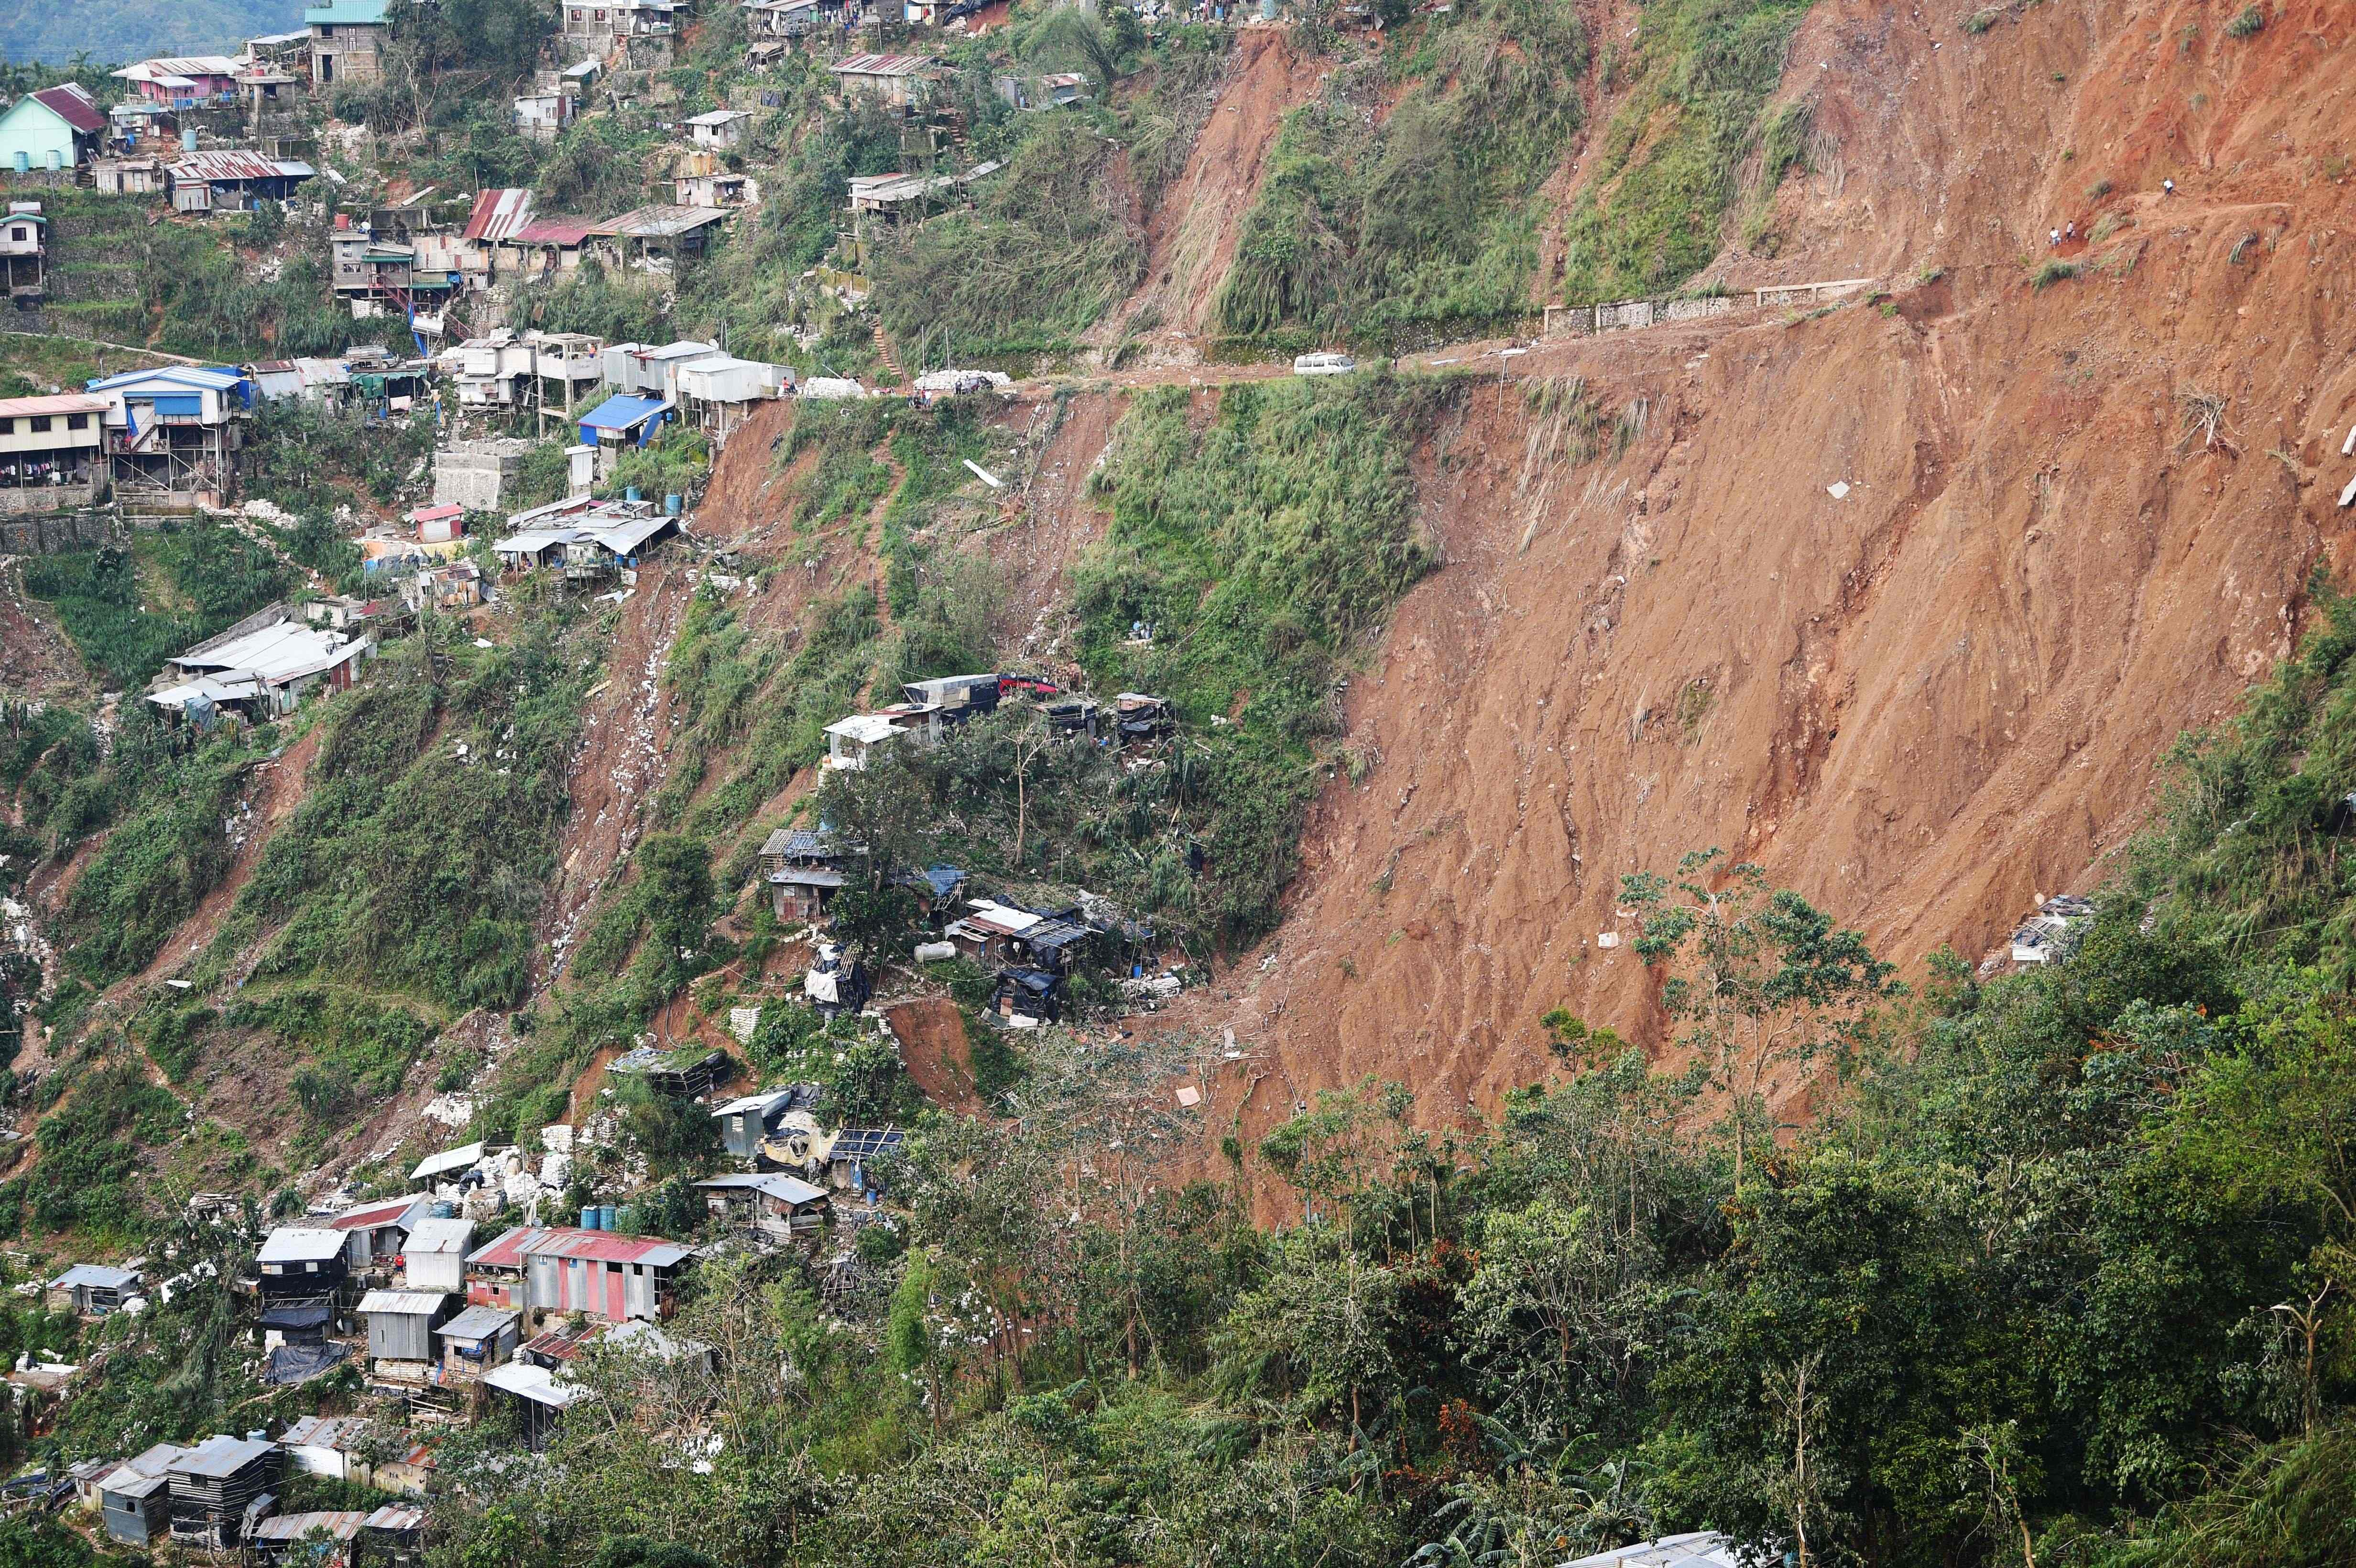 A general view shows the landslide site due to heavy rains brought about by Typhoon Mangkhut in Itogon, Benguet province on Sept. 17, 2018.  Philippine rescuers used shovels and their bare hands to claw through mounds of rocky soil on September 17, as they desperately looked for dozens of miners feared buried beneath a landslide unleashed by Typhoon Mangkhut.